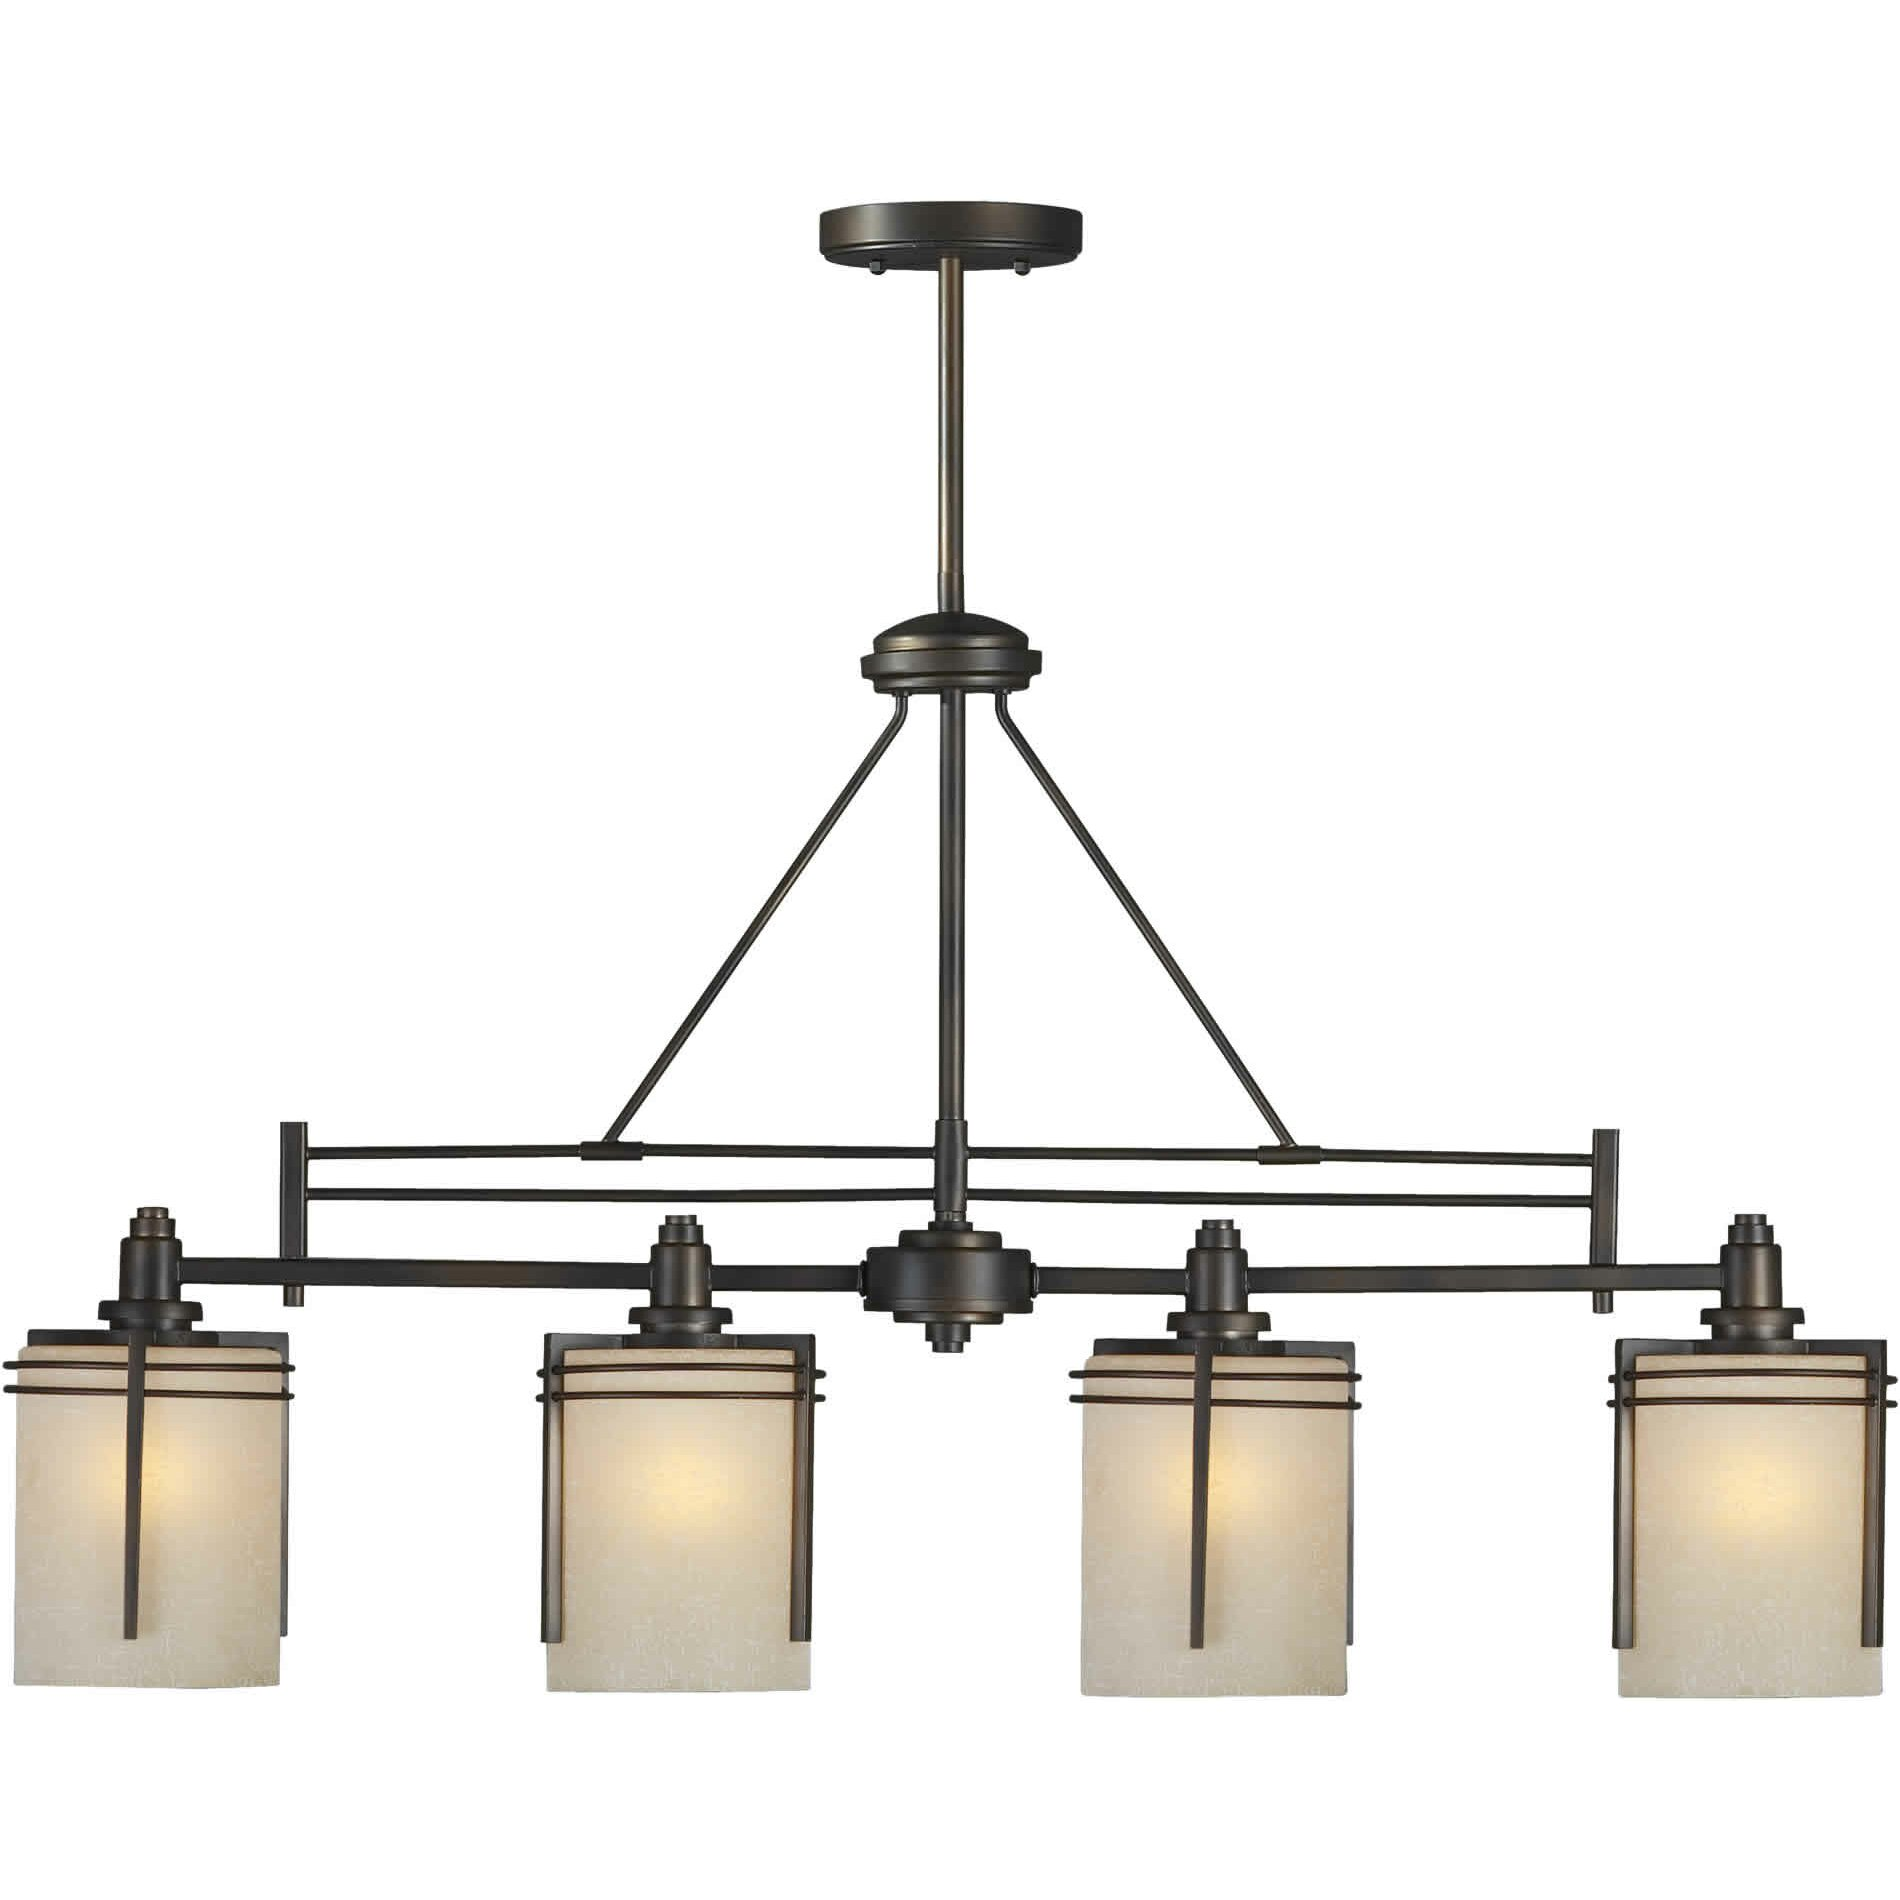 Kitchen Island Pendant Lighting: Forte Lighting 4 Light Kitchen Island Pendant & Reviews